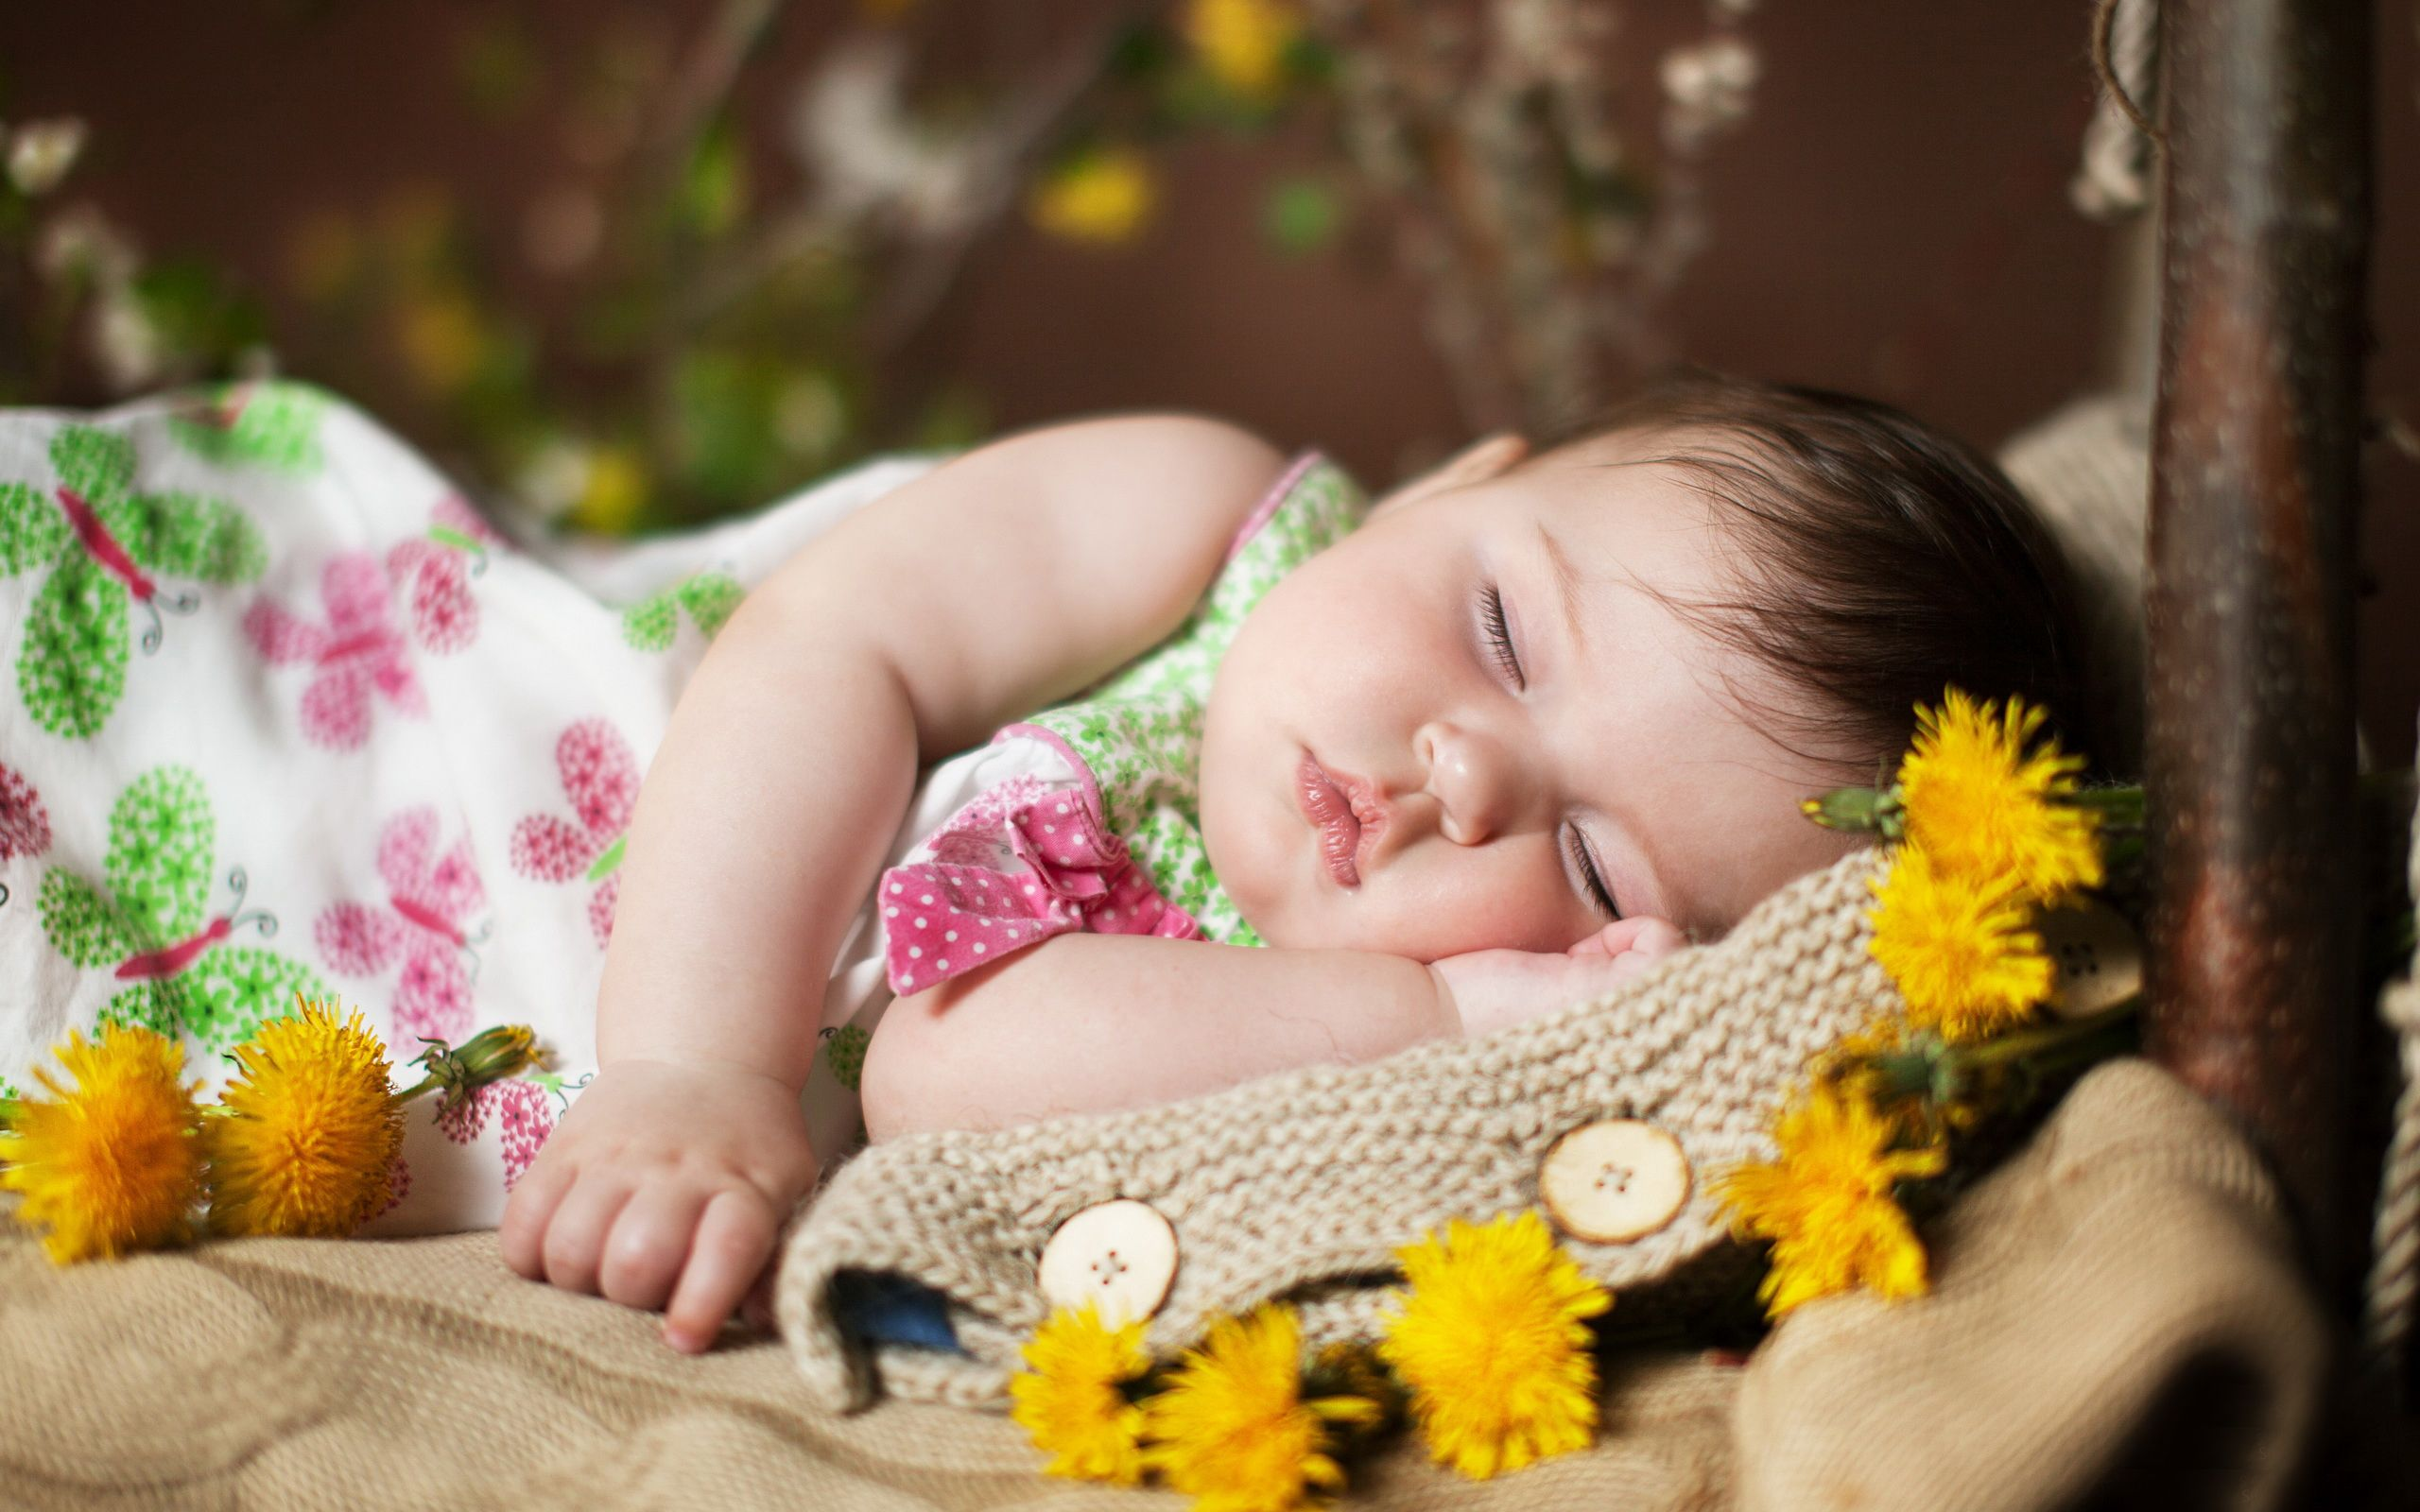 cute sleeping baby hd wallpaper cute baby, hd, wallpapers, sweet